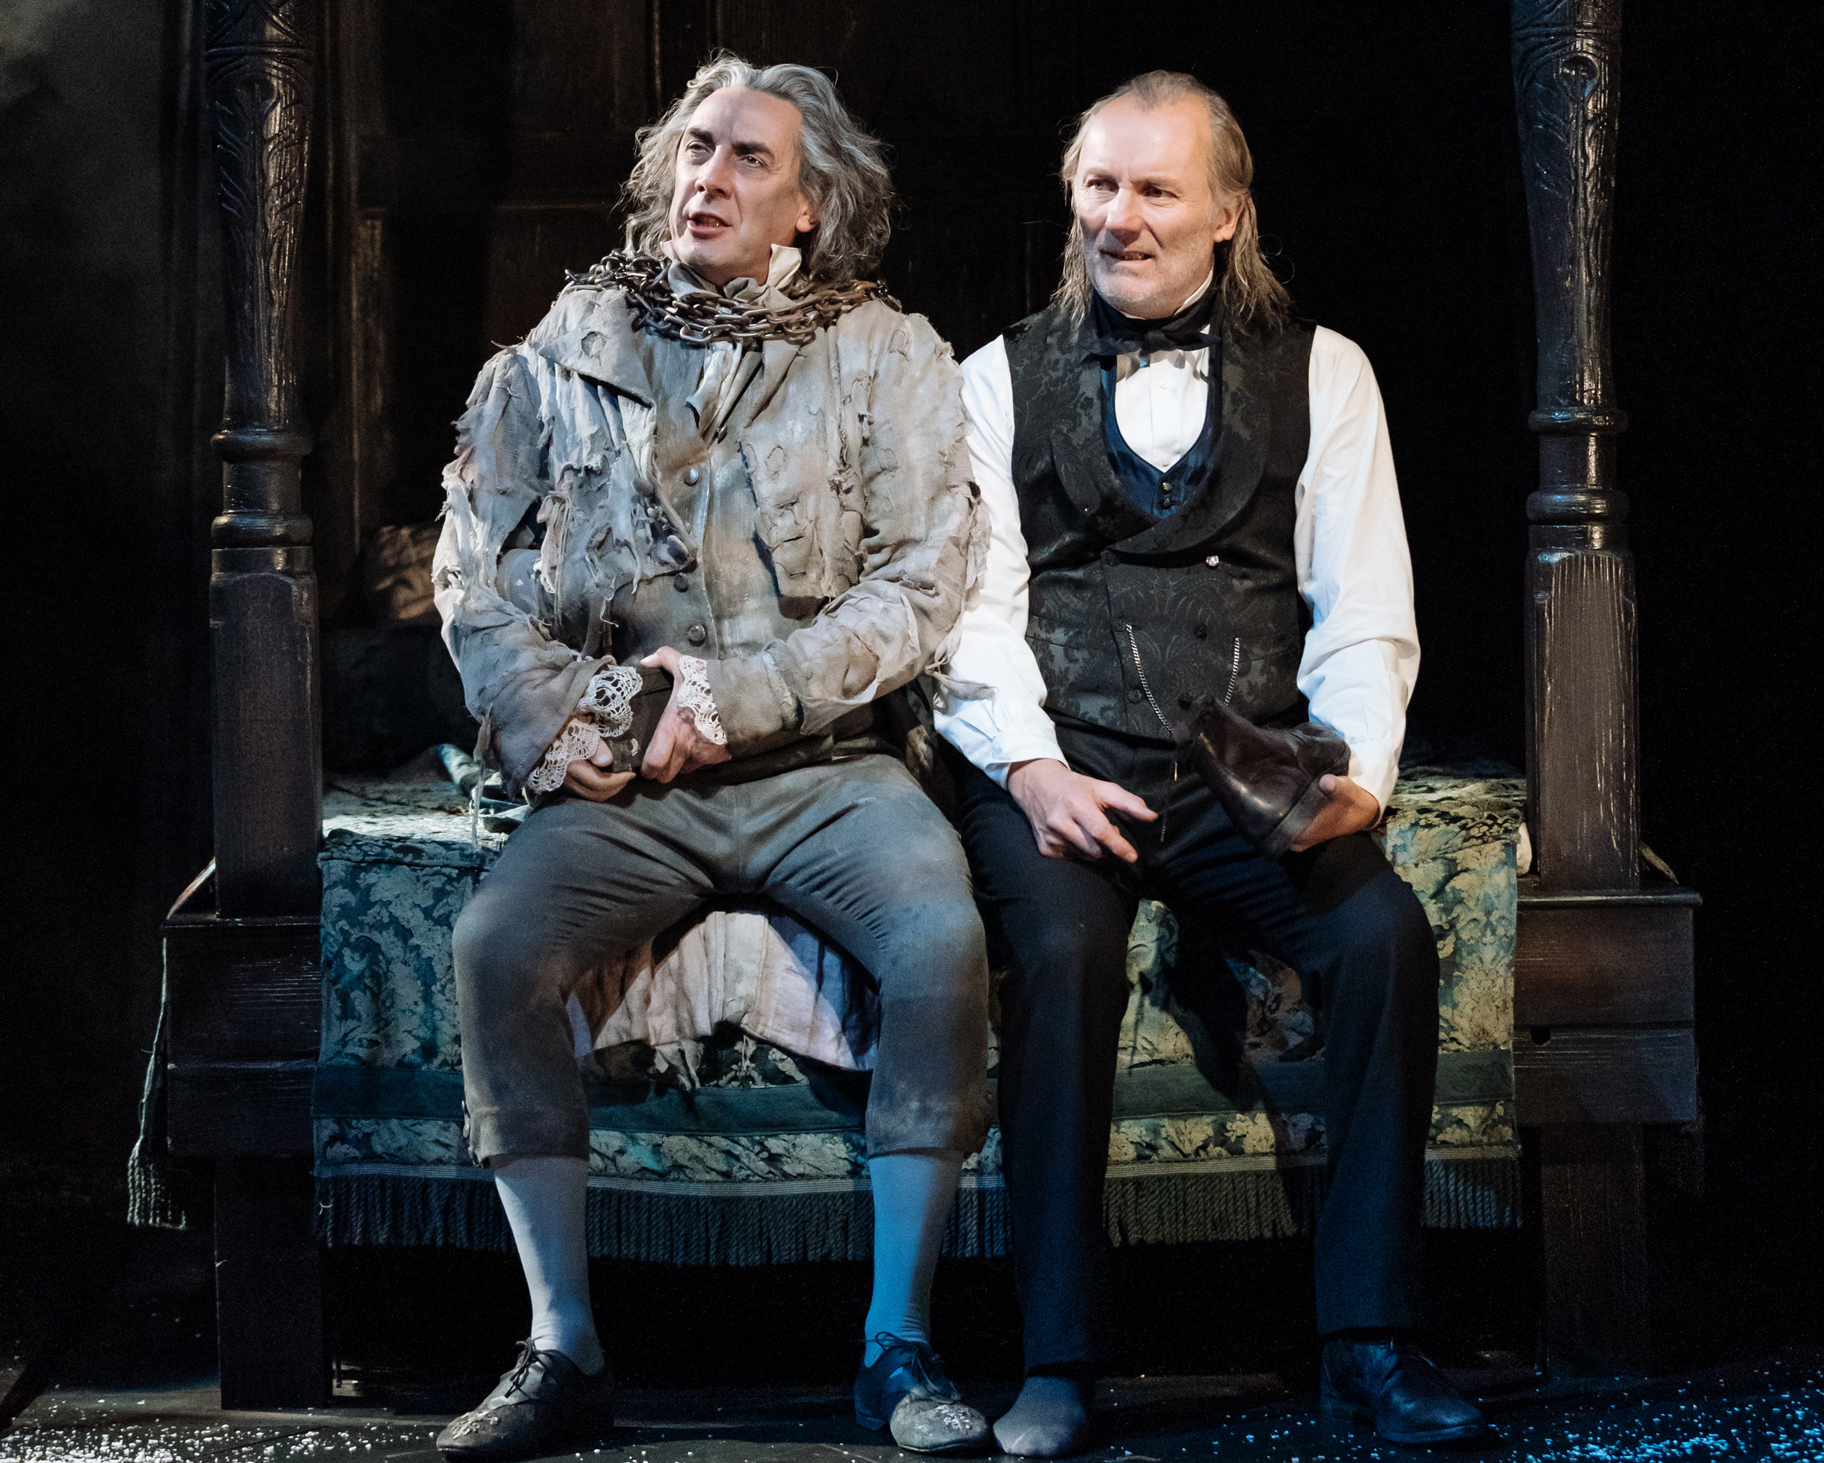 Jacob Marley and Scrooge seated on a 4-poster bed